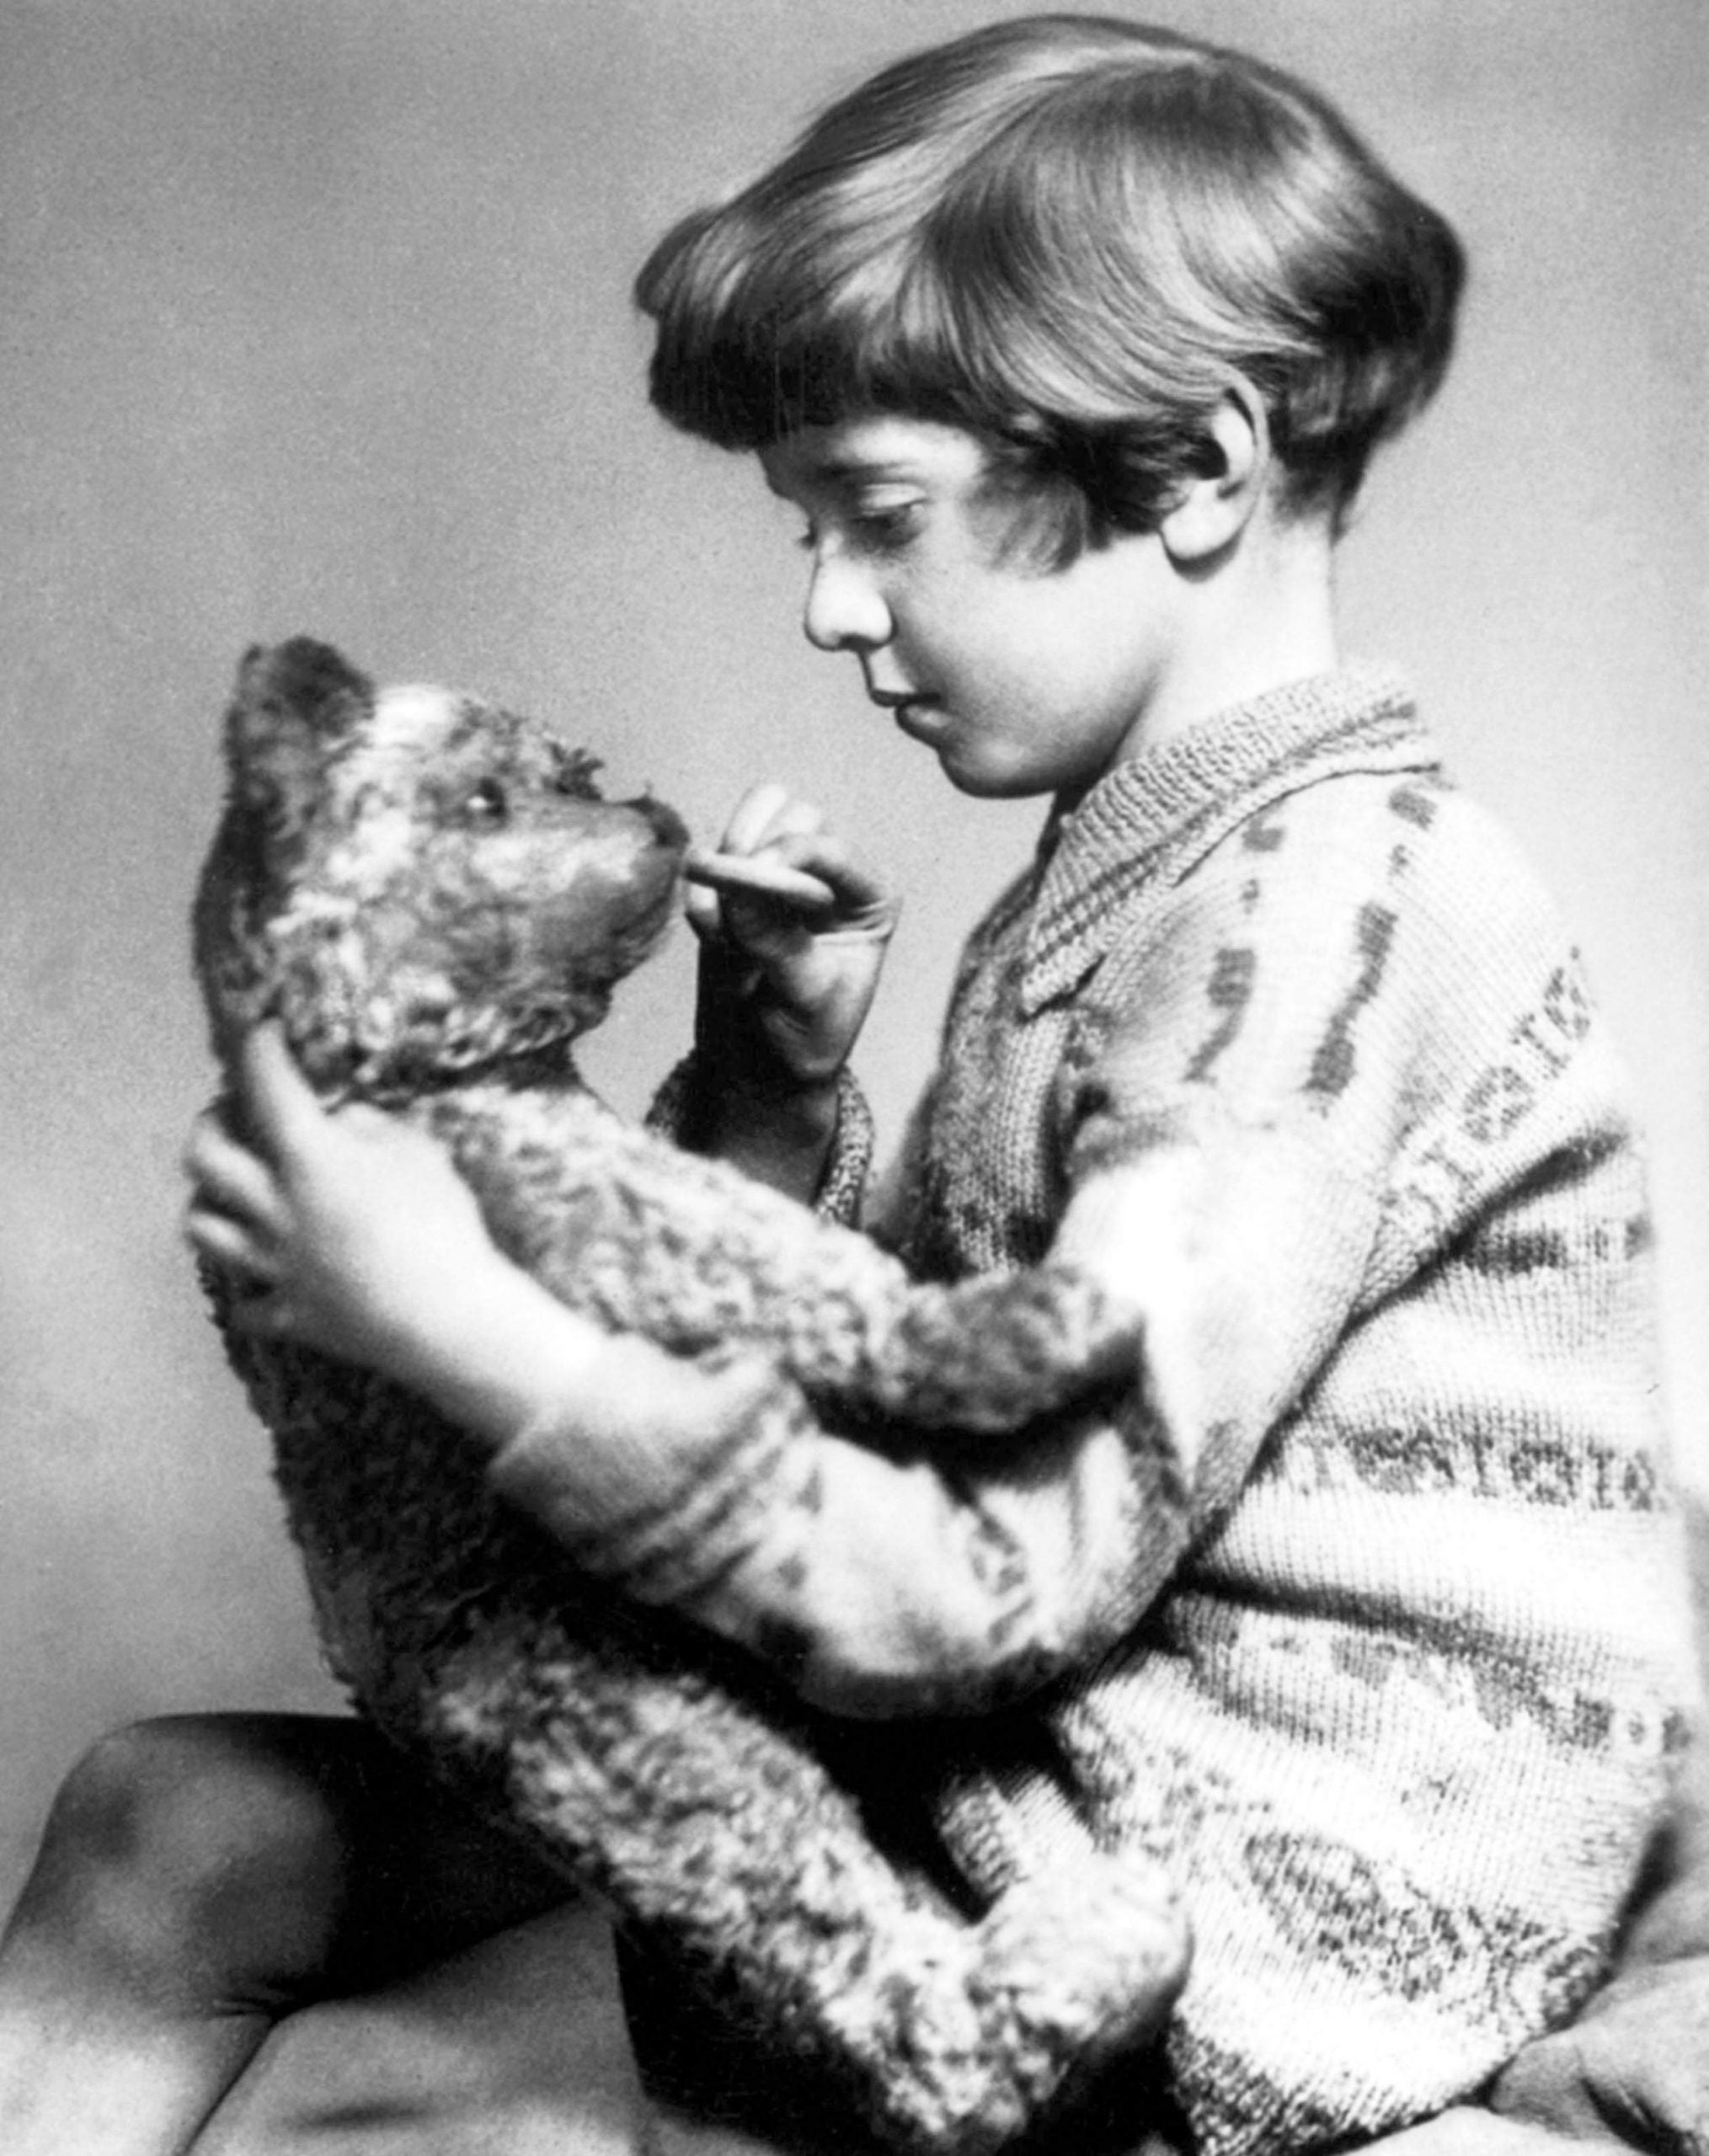 Exit, pursued by a bear: how the real Christopher Robin escaped Winnie-the-Pooh